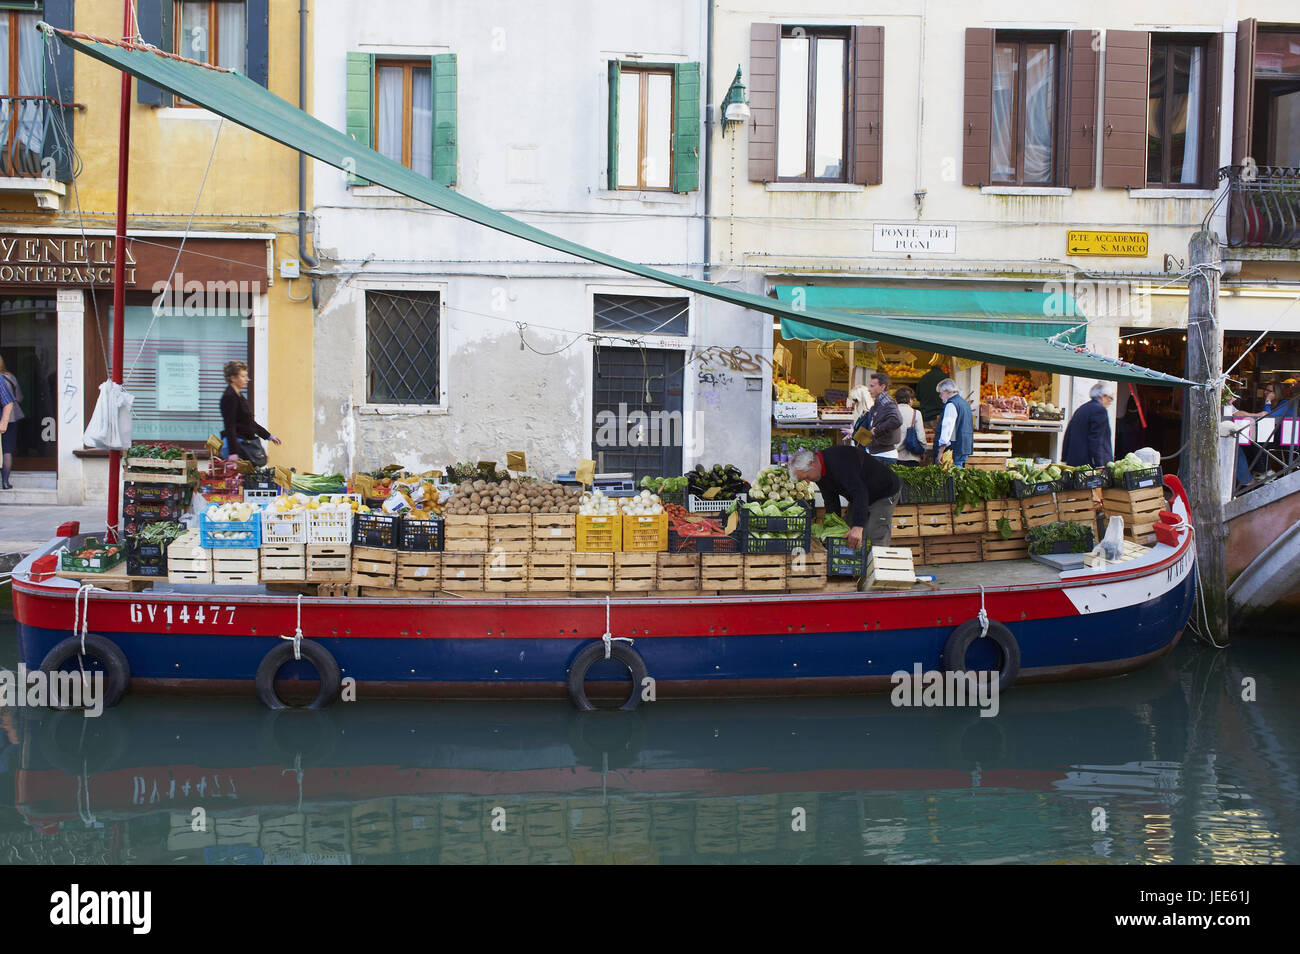 Italy, Venice, greengrocery on a boot, - Stock Image